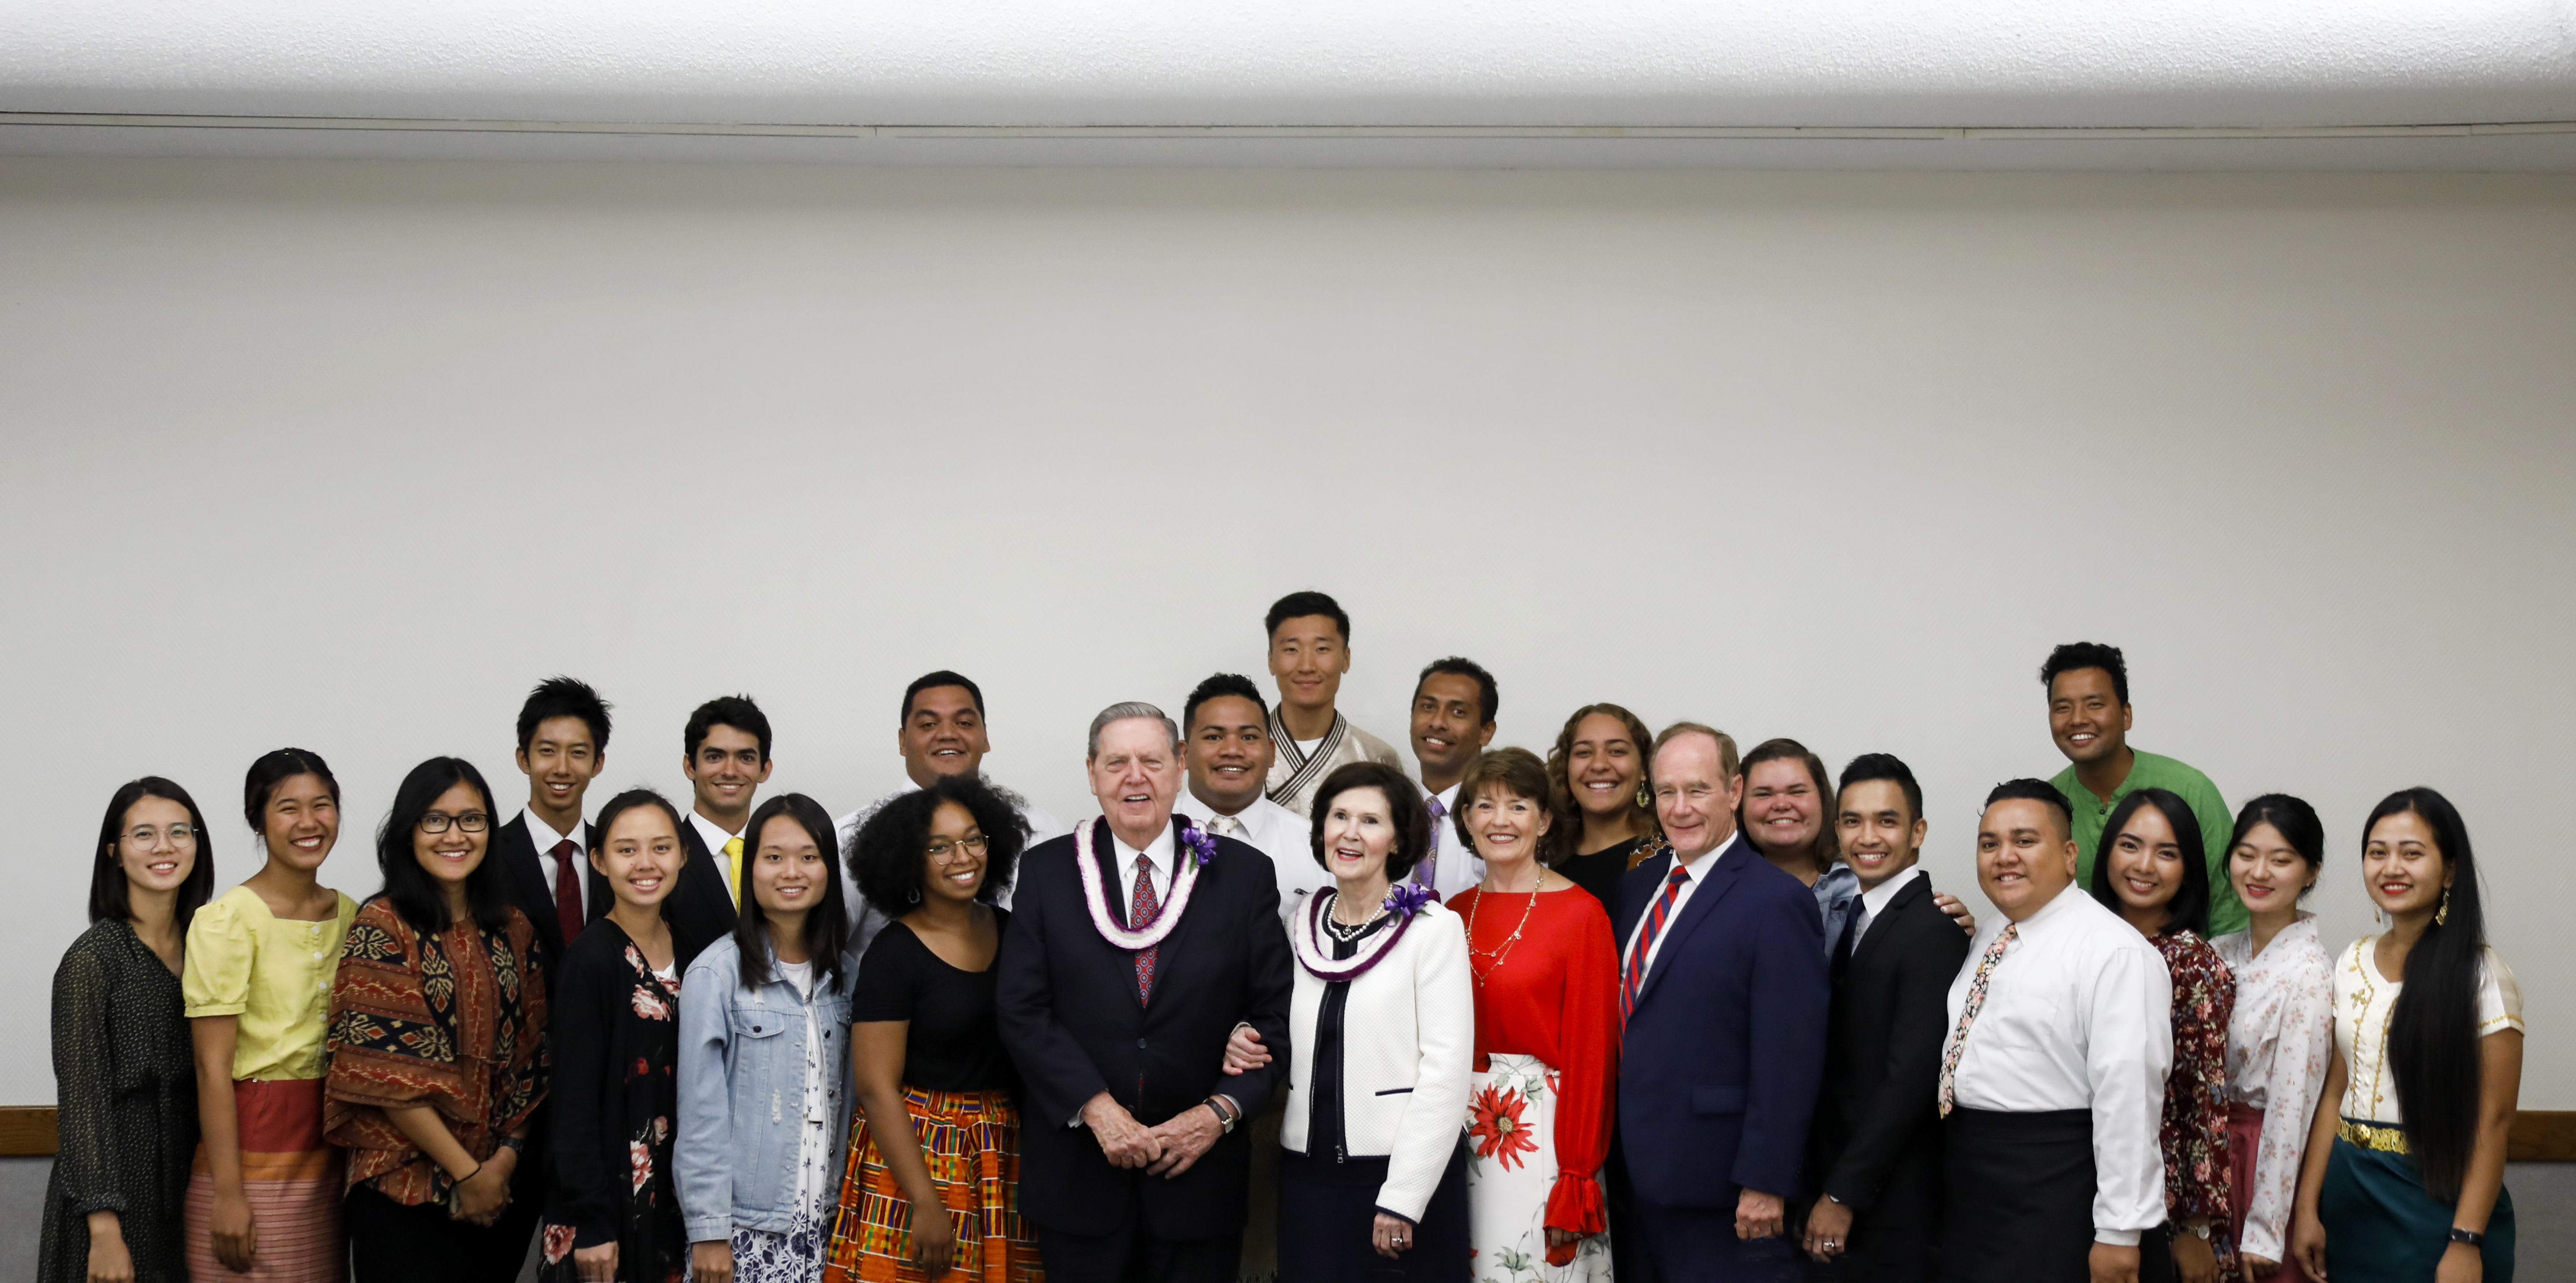 Elder Jeffrey R. Holland and his wife, Sister Patricia Holland, are pictured with BYU-Hawaii President John S. Tanner and his wife, Sister Susan W. Tanner, along with a group of students.